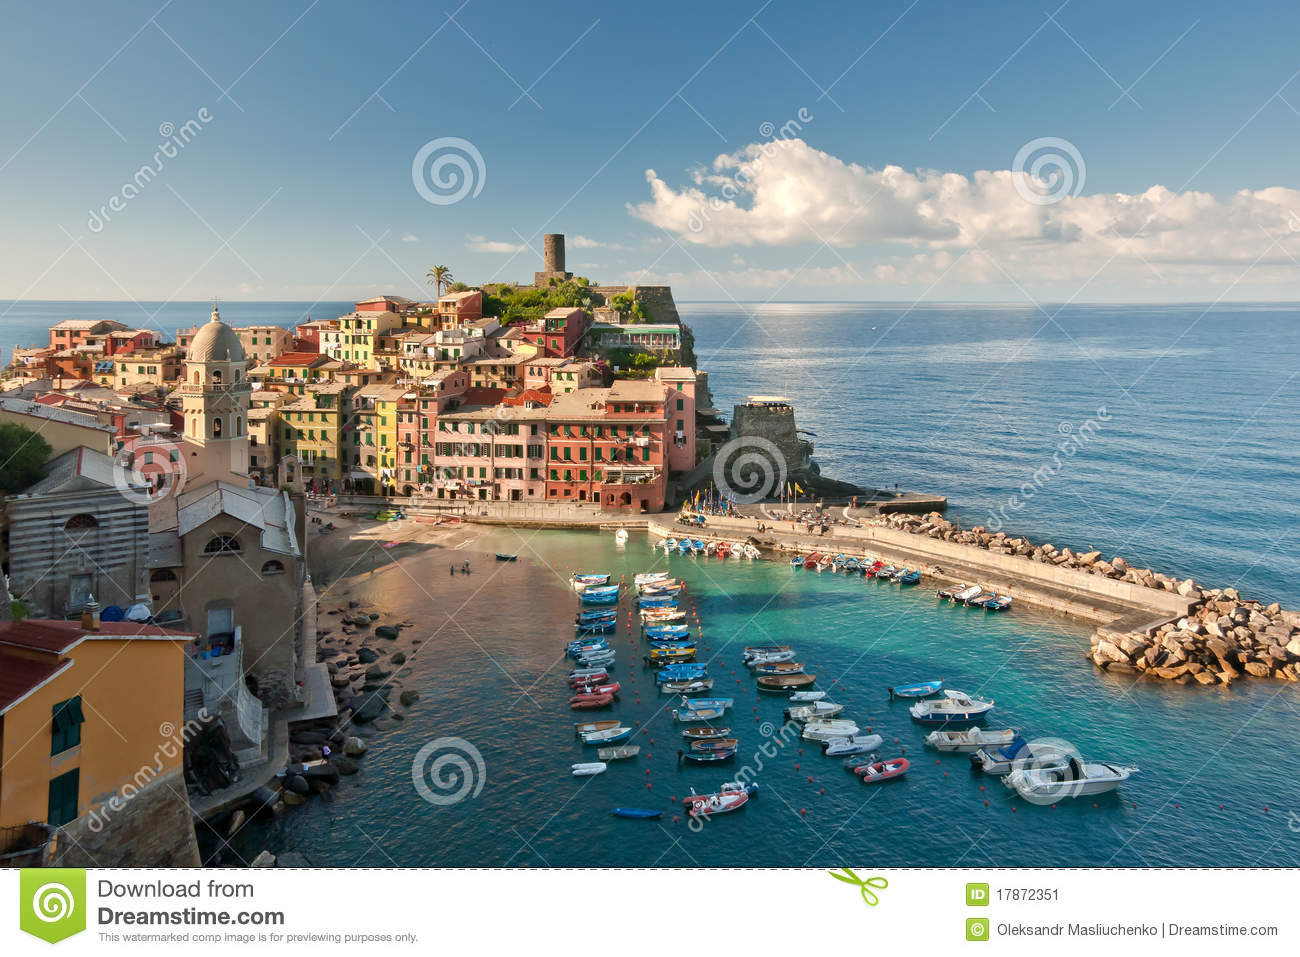 https://thumbs.dreamstime.com/z/town-sea-coast-17872351.jpg